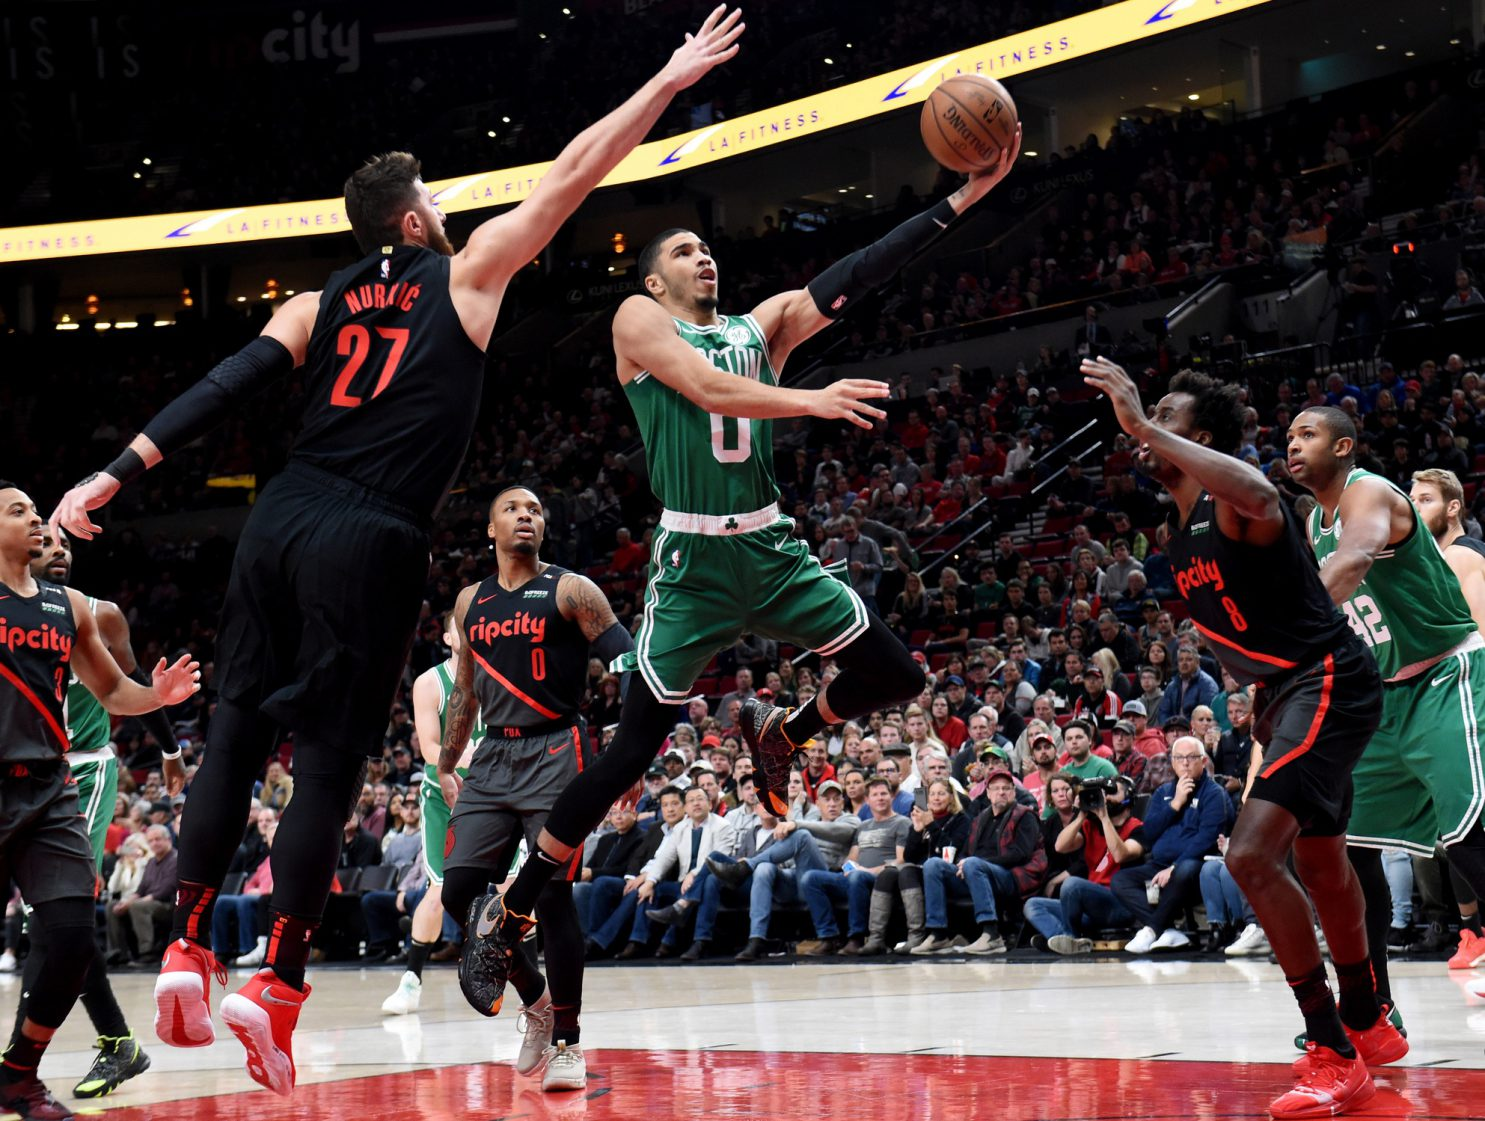 Recap: Celtics make brief rallies but can't stop Blazers onslaught